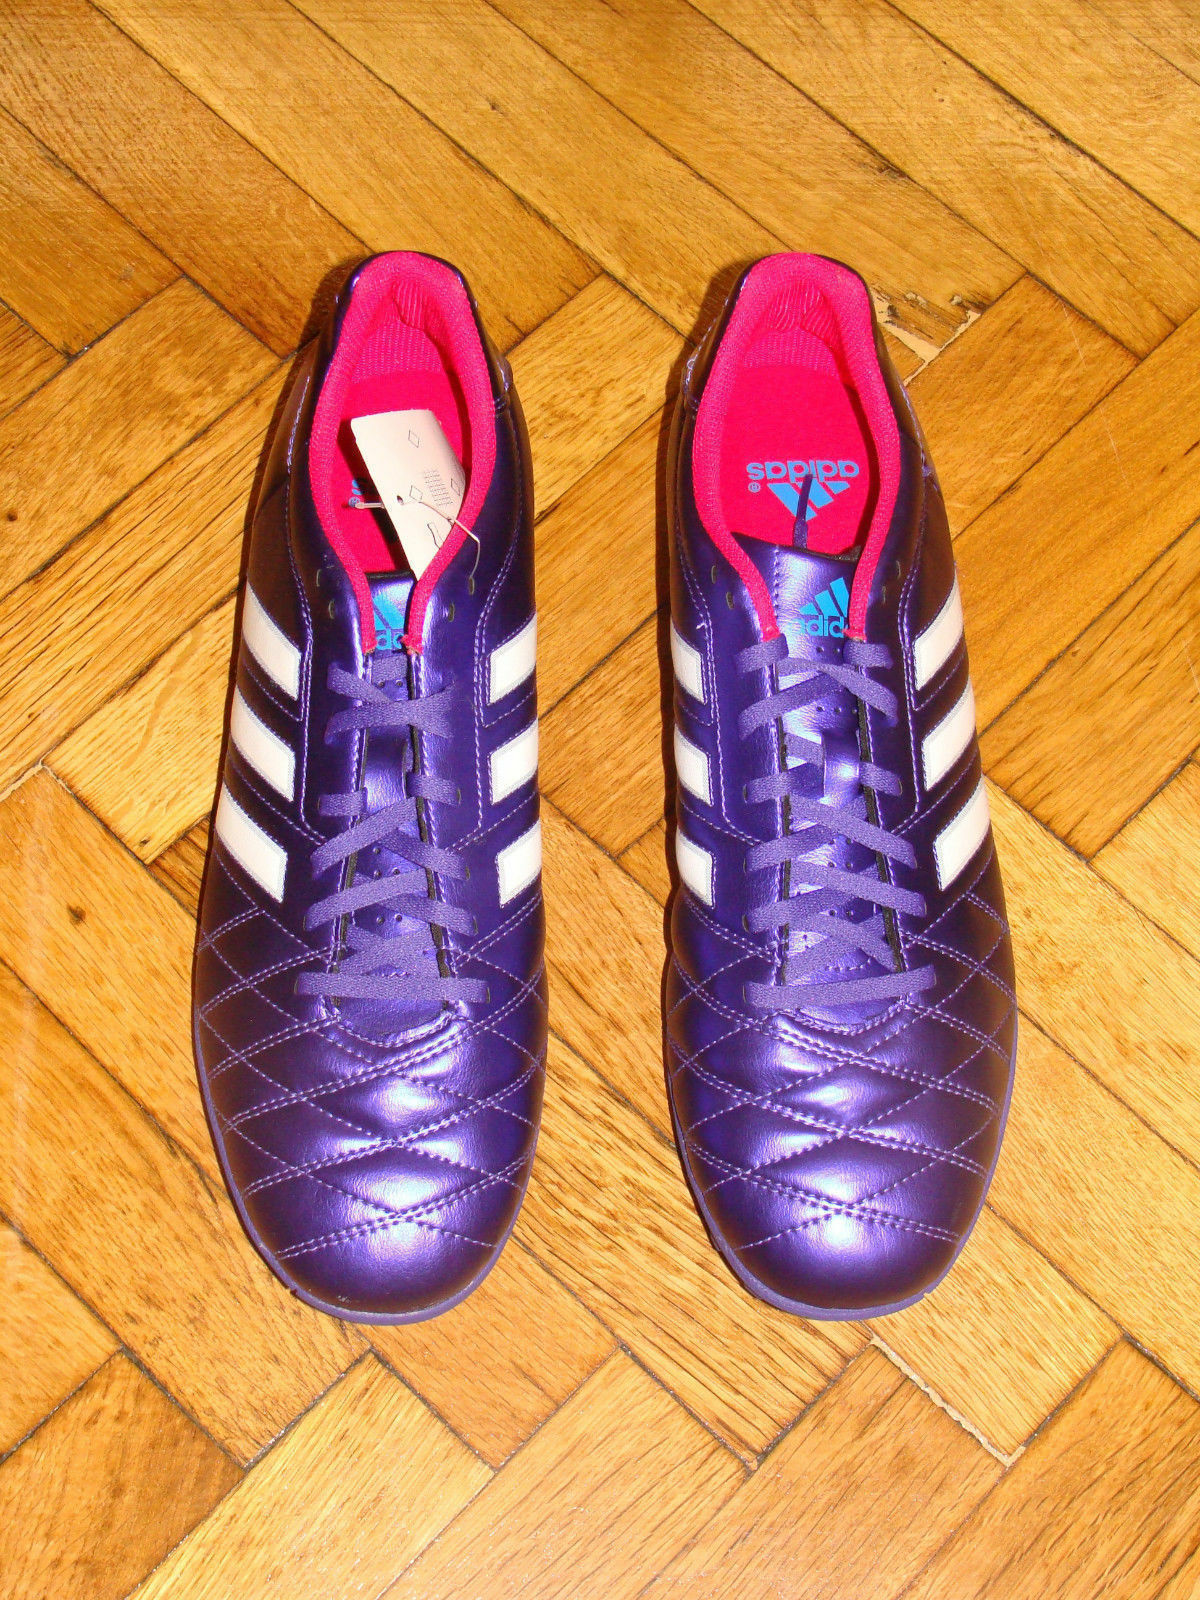 outlet store sale d9704 df41d ... Adidas Soccer Soccer Soccer Shoes 11 Questra TRX TF Football Astros New  023b92 ...